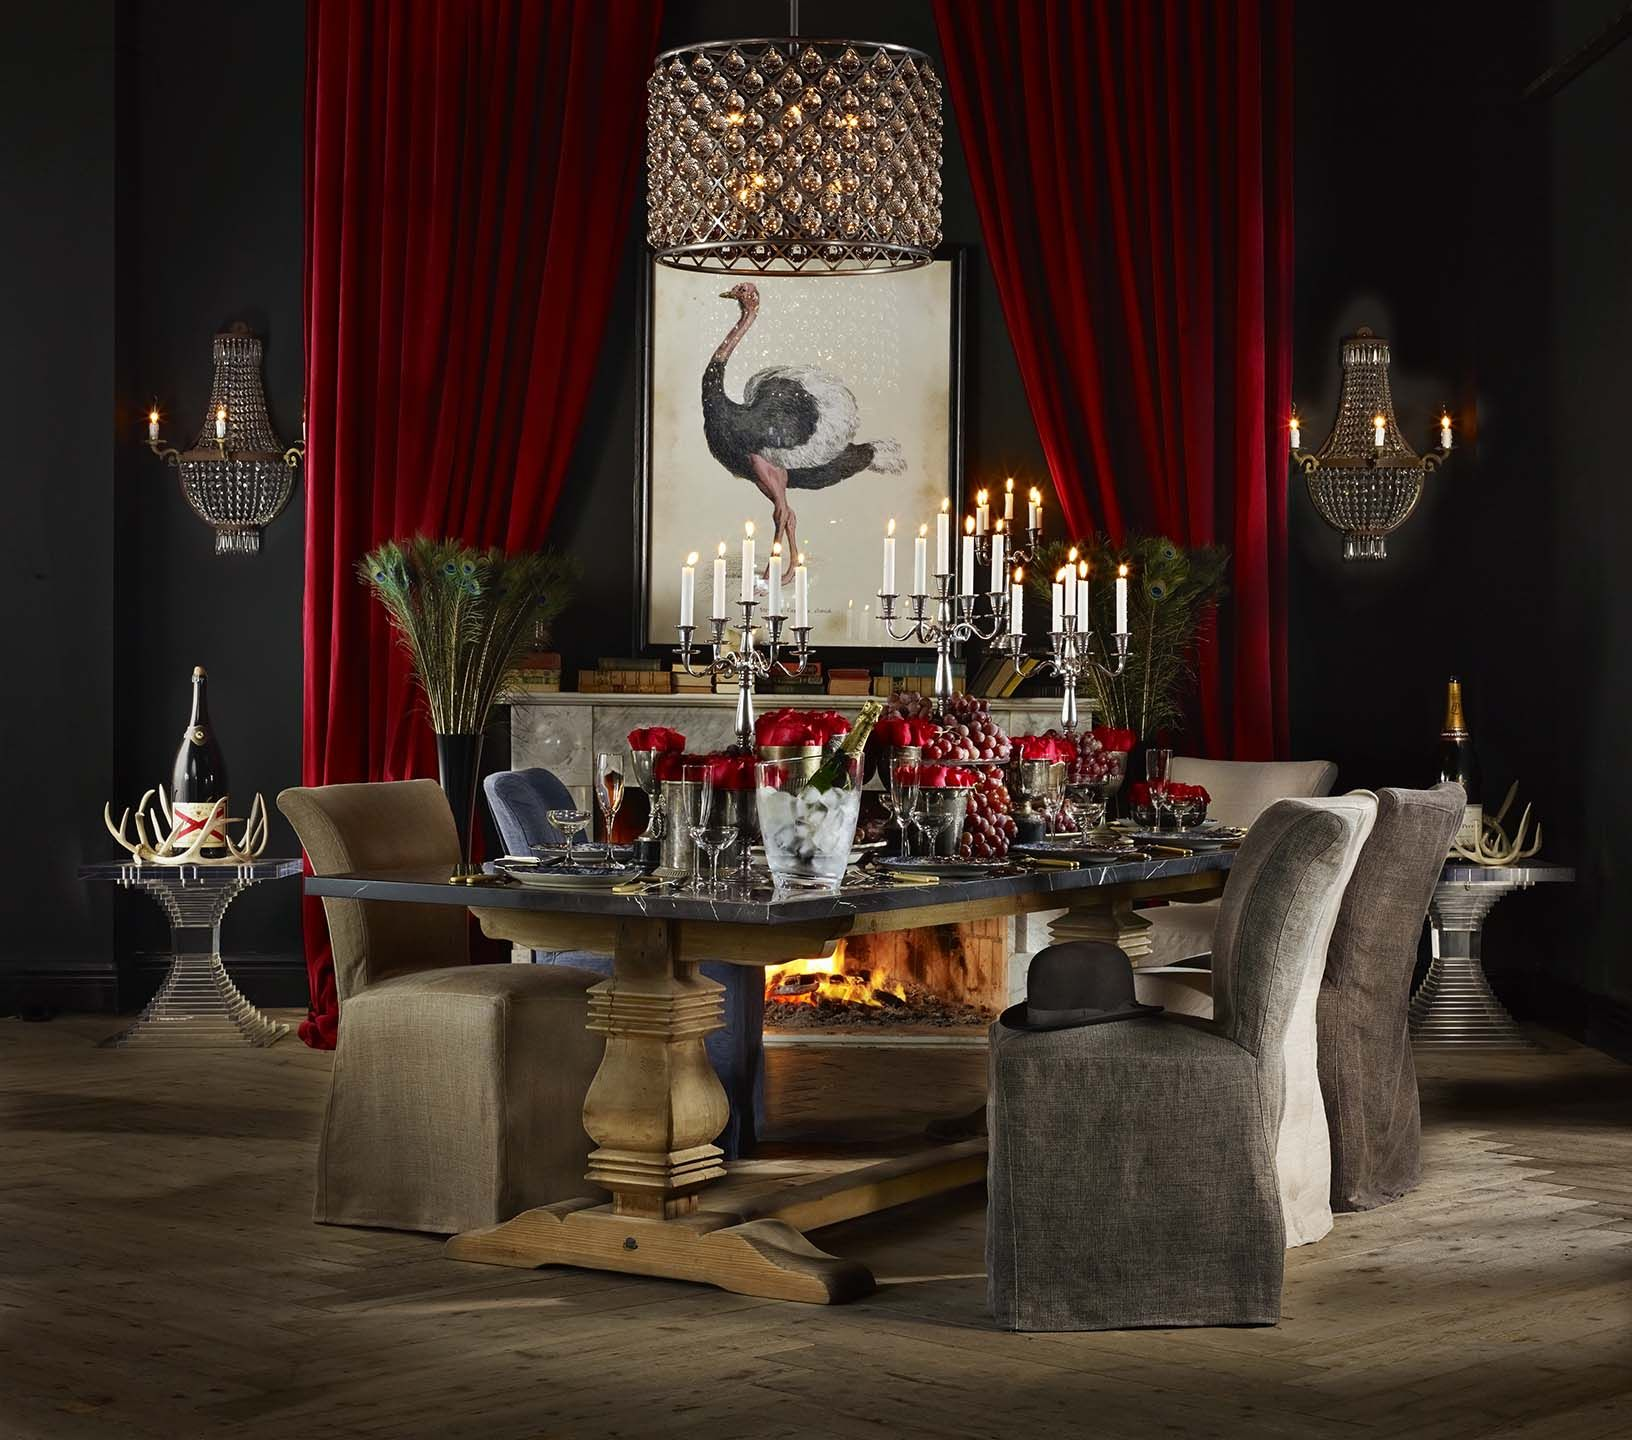 Original Lighting Designs By Timothy Oulton